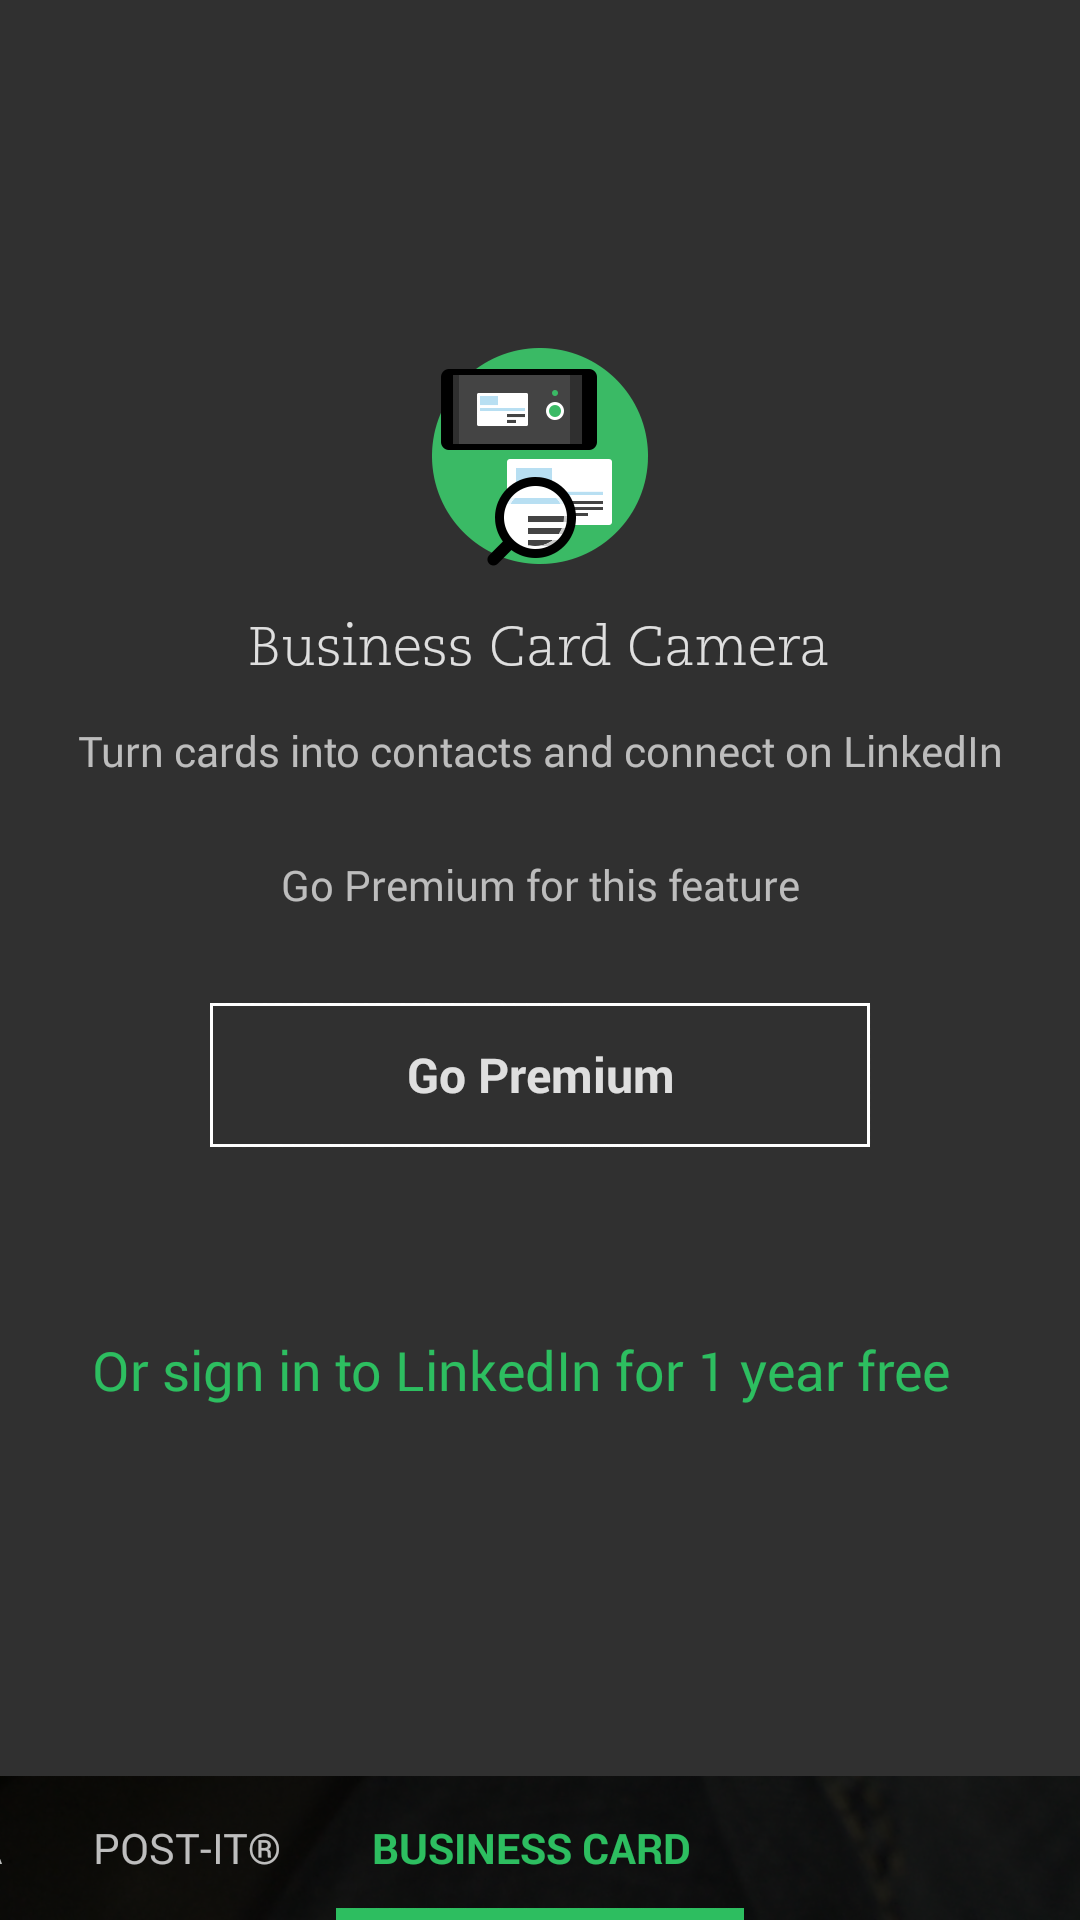 Evernote Business Card Scanning Test